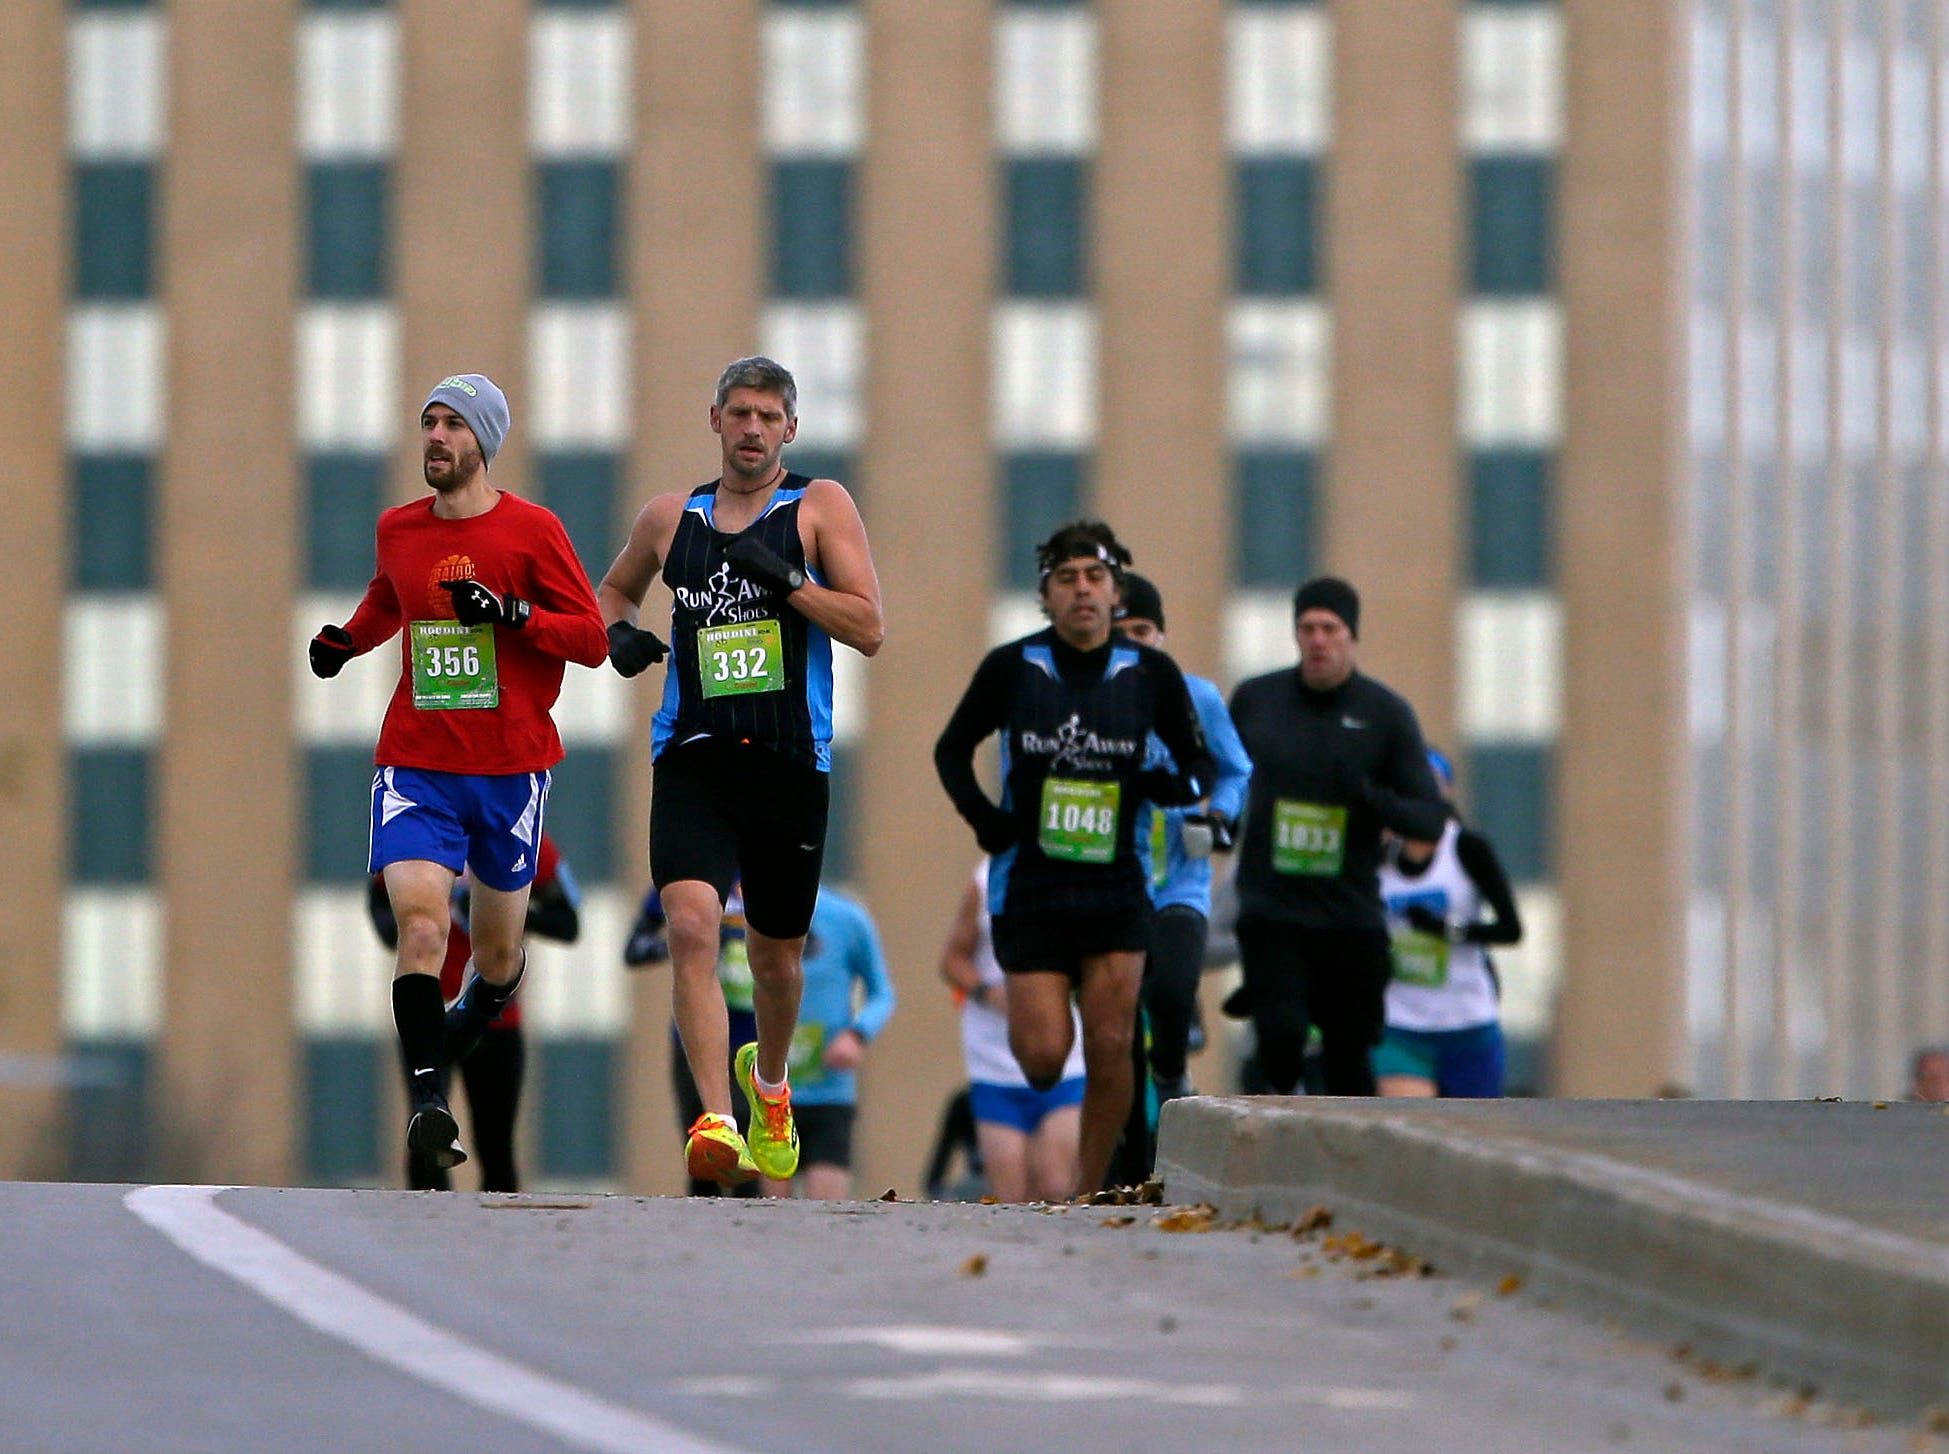 Runners cross the Oneida Street bridge as the 4th annual Appleton Houdini 10K takes place Saturday, November 3, 2018, in Appleton, Wis.Ron Page/USA TODAY NETWORK-Wisconsin